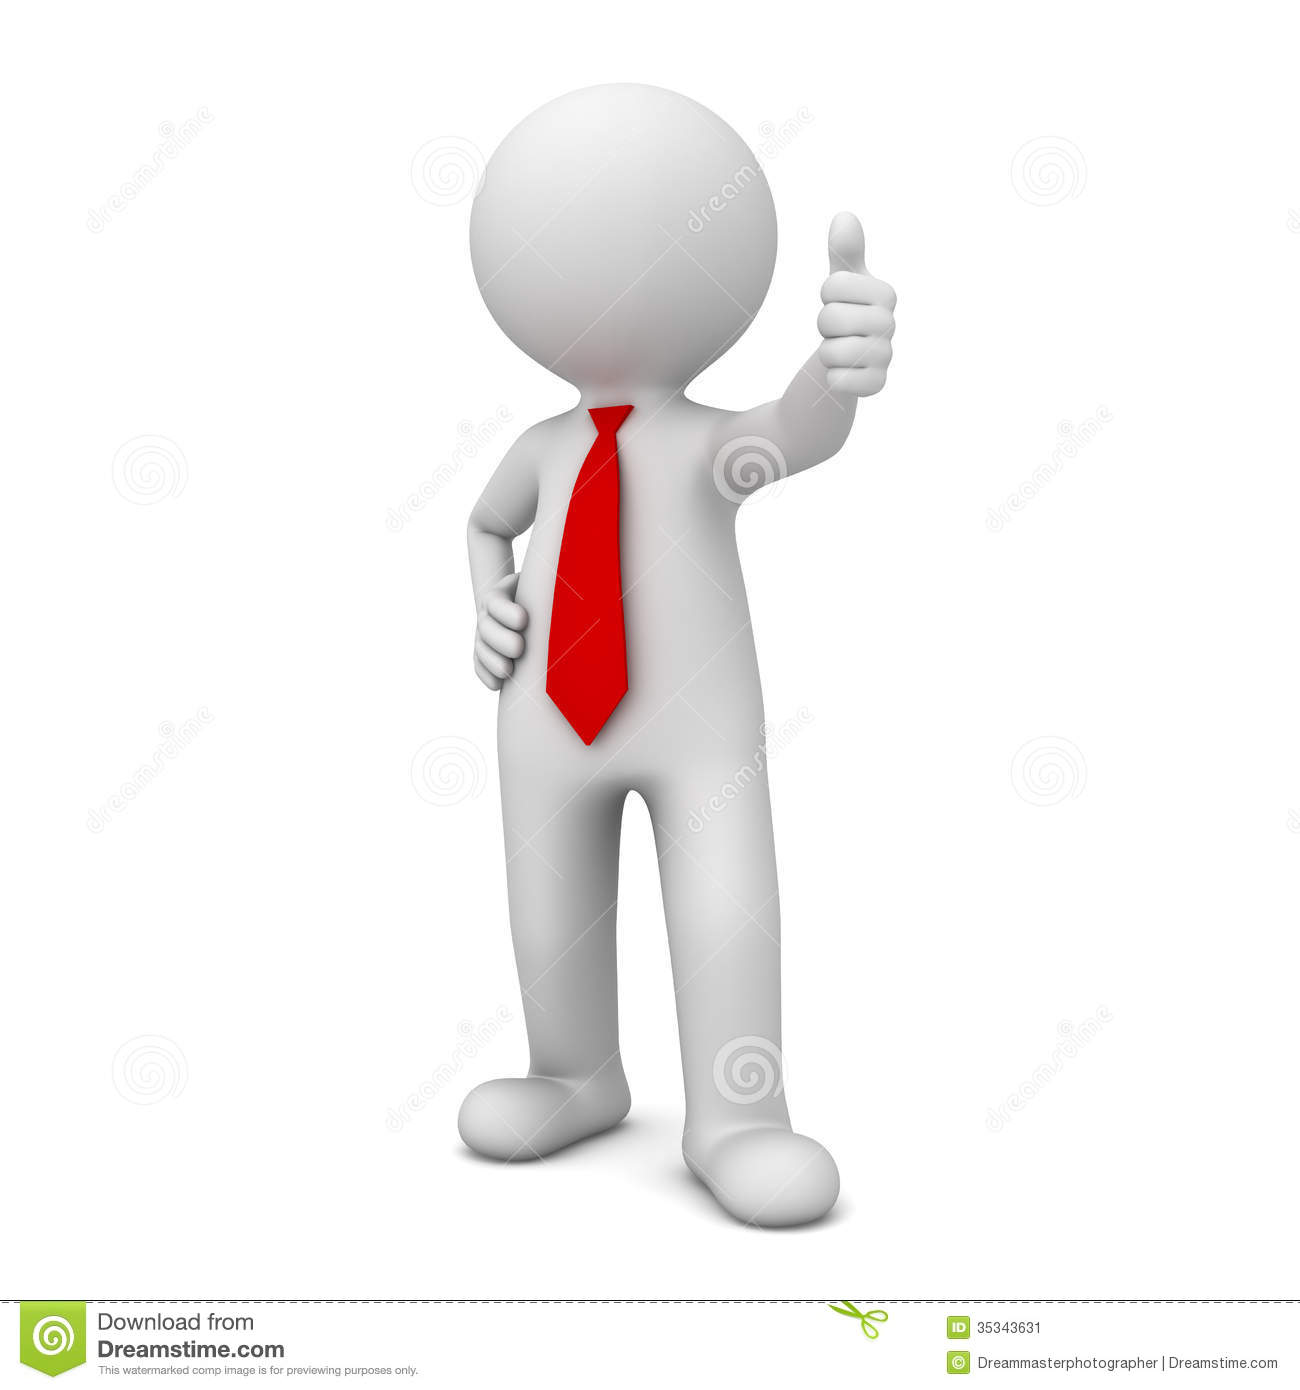 d-business-man-showing-thumbs-up-like-over-white-background-35343631.jpg